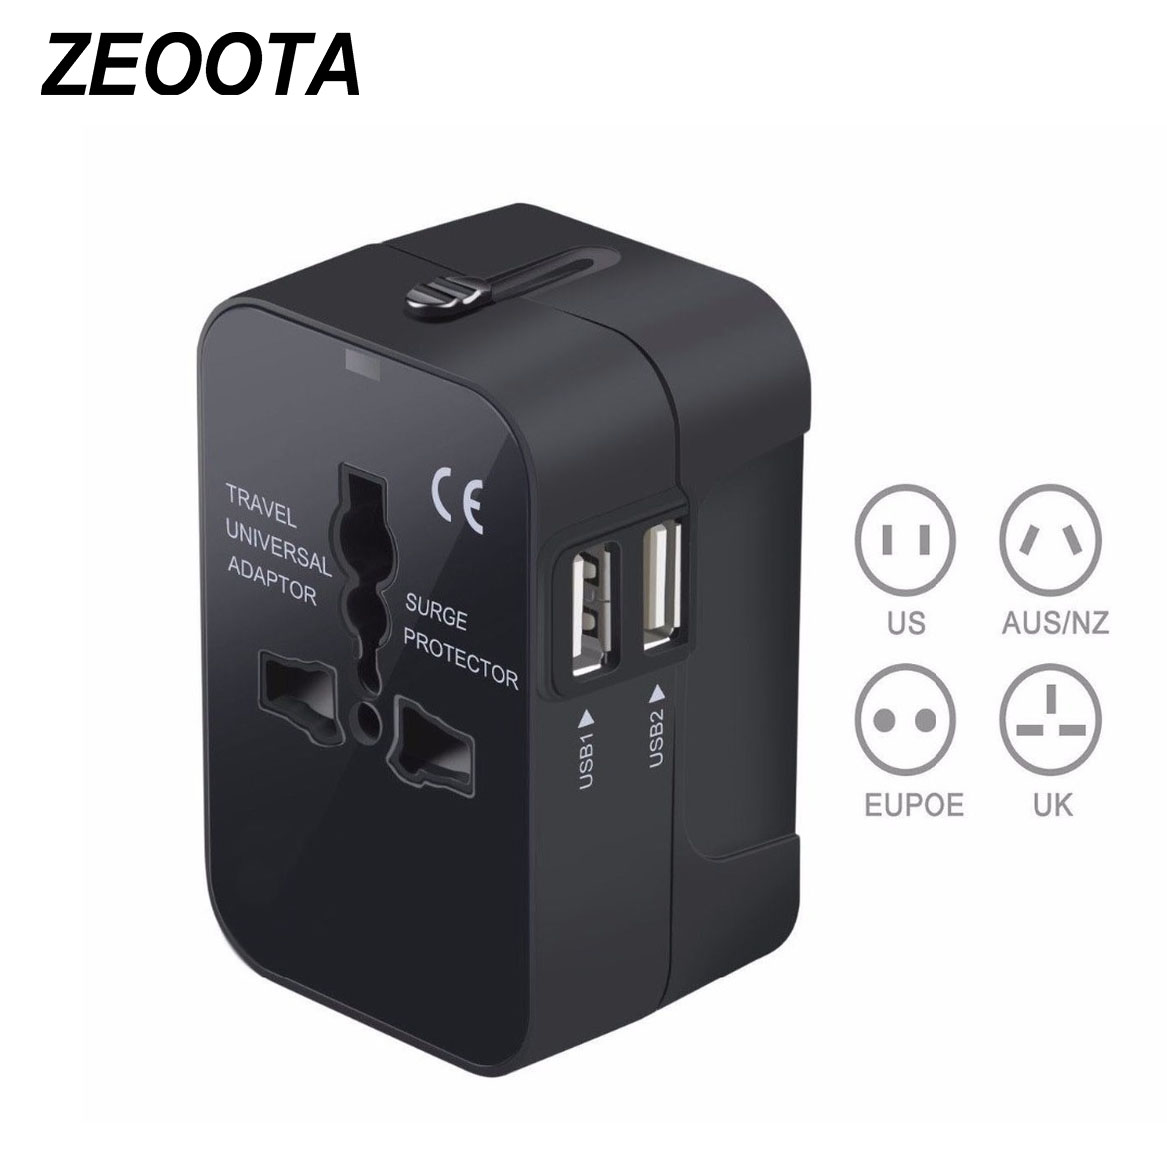 Universal Worldwide All in One Phone Charger Travel Wall AC Power Plug Adapter with Dual USB Charging Ports for USA EU UK AU all in one universal international plug adapter 2 usb port world travel ac power charger adaptor with au us uk eu converter plug